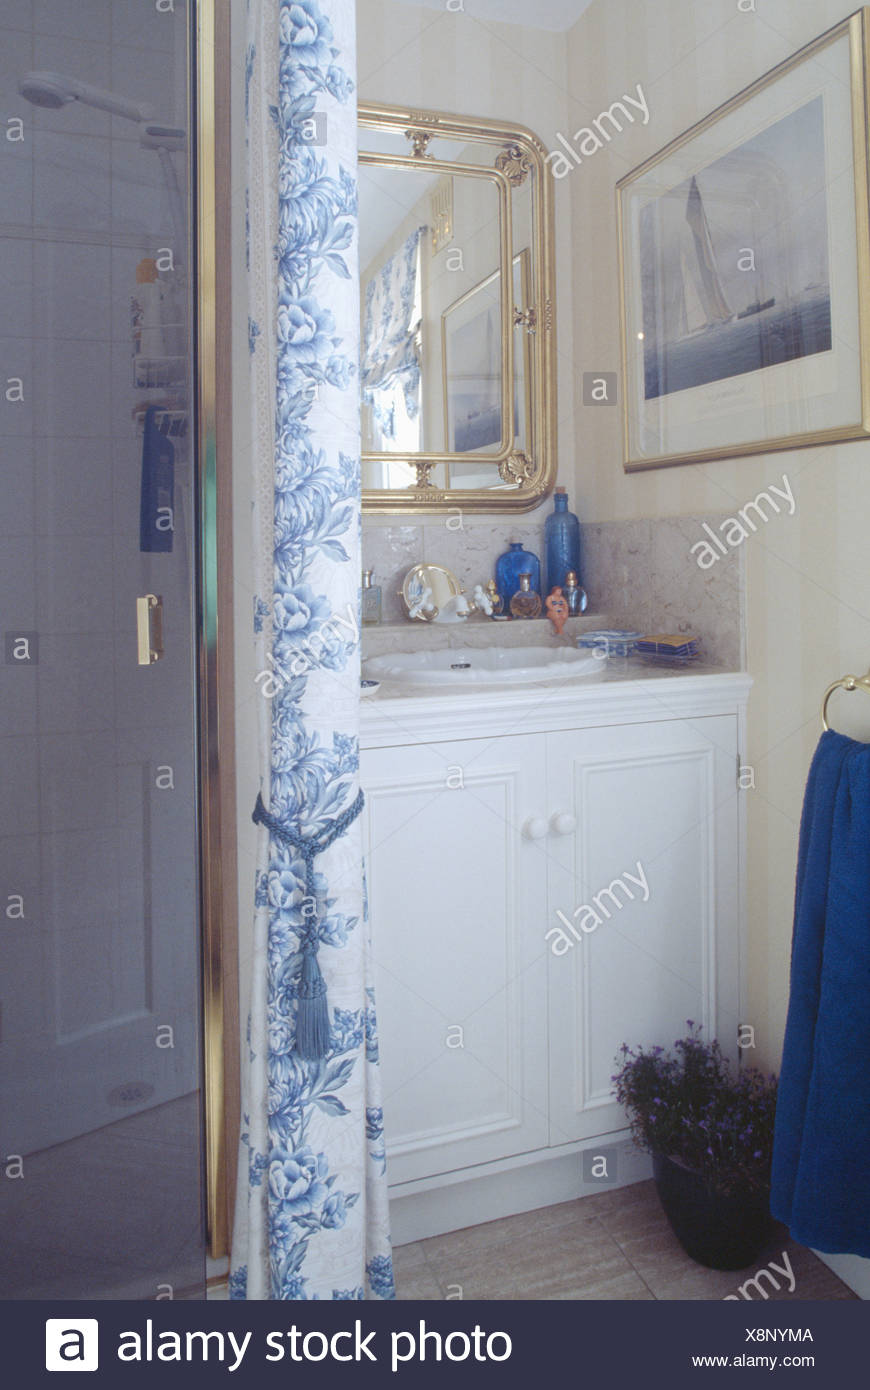 Blue and white floral curtain beside glass shower door in ...